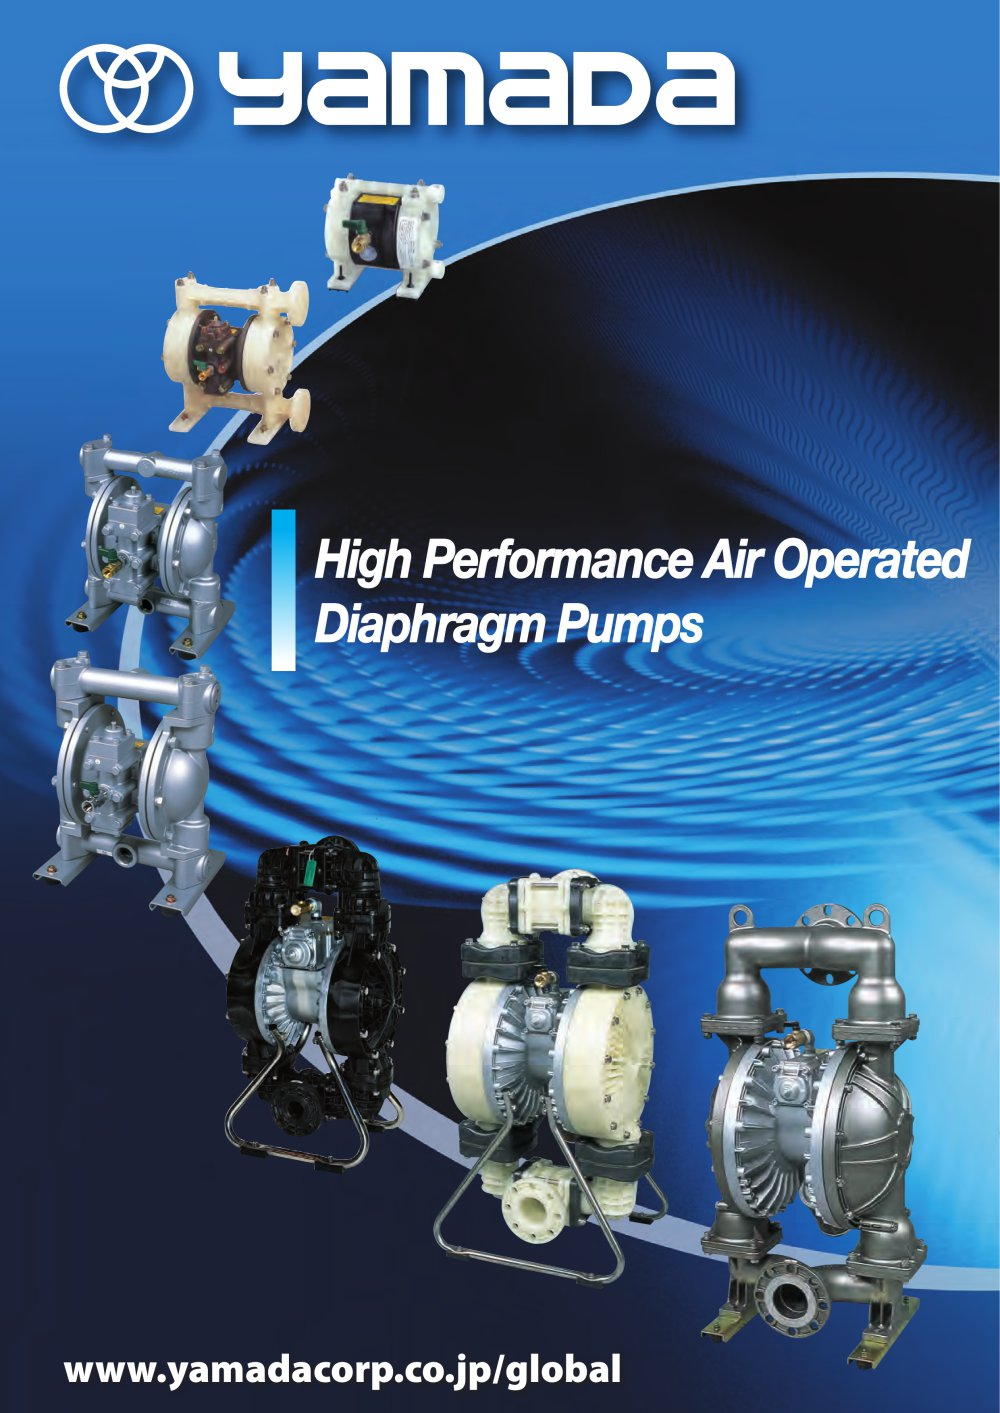 High performance air operated diaphragm pumps yamada corporation high performance air operated diaphragm pumps 1 32 pages ccuart